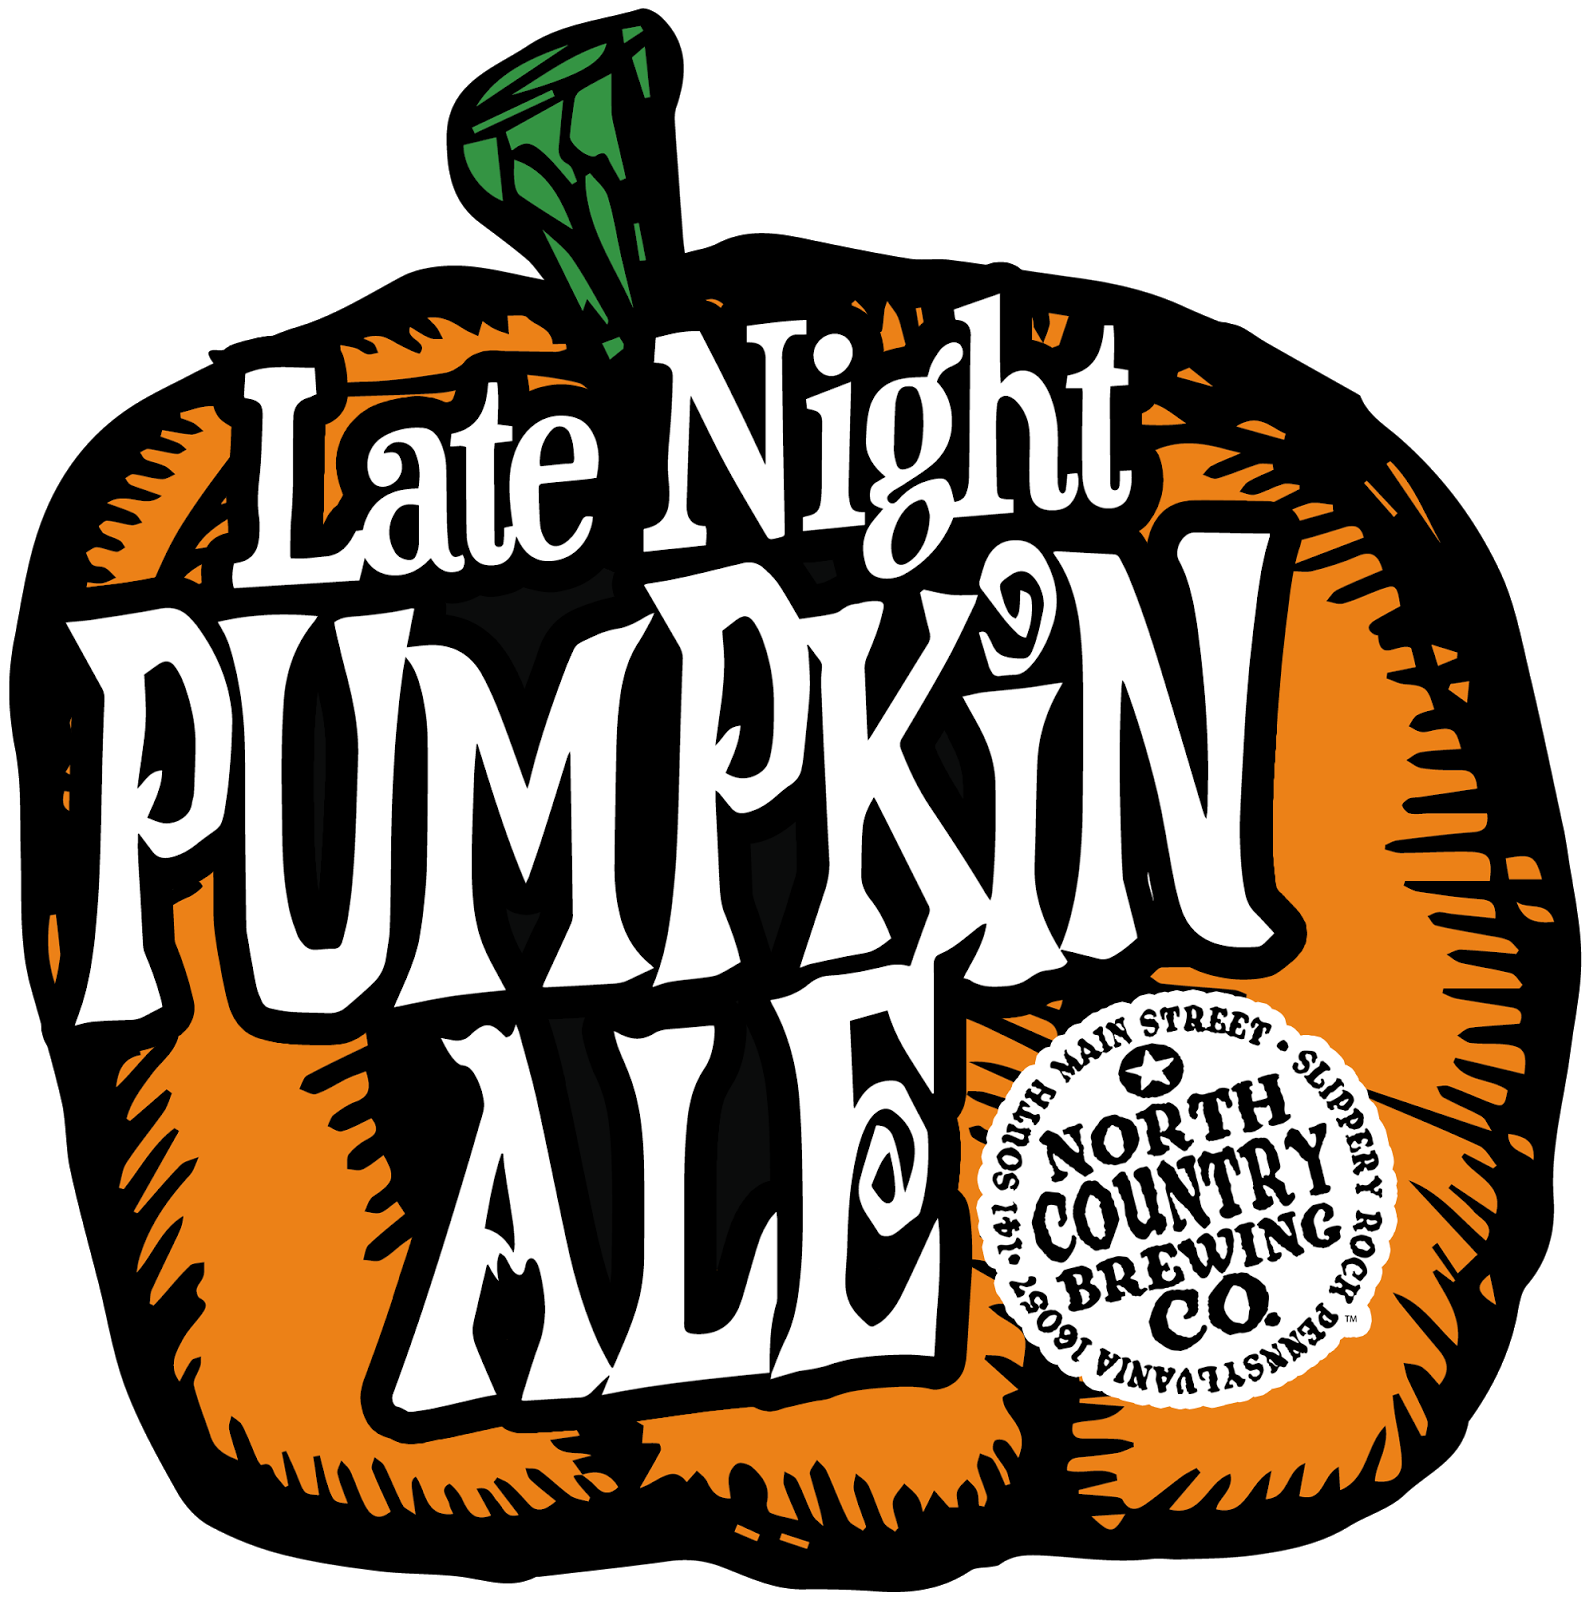 The great pumpkin charlie brown clipart png Late Night Pumpkin Ale: North Country Brewing Production png